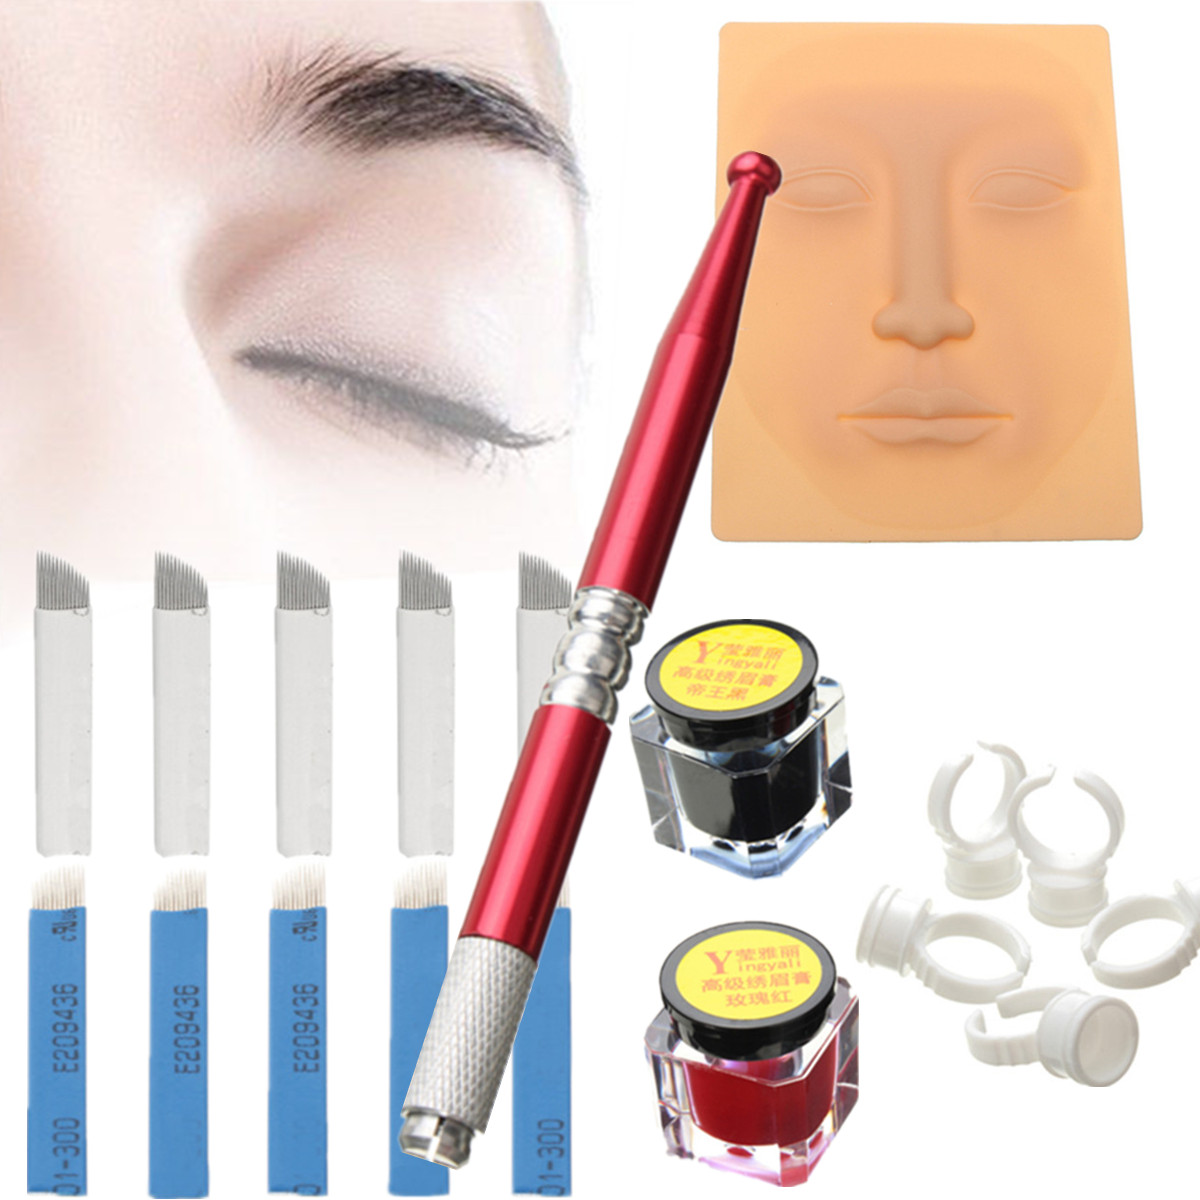 Micro Blading Permanent Makeup Eyebrow Tattoo Needle Pen Set